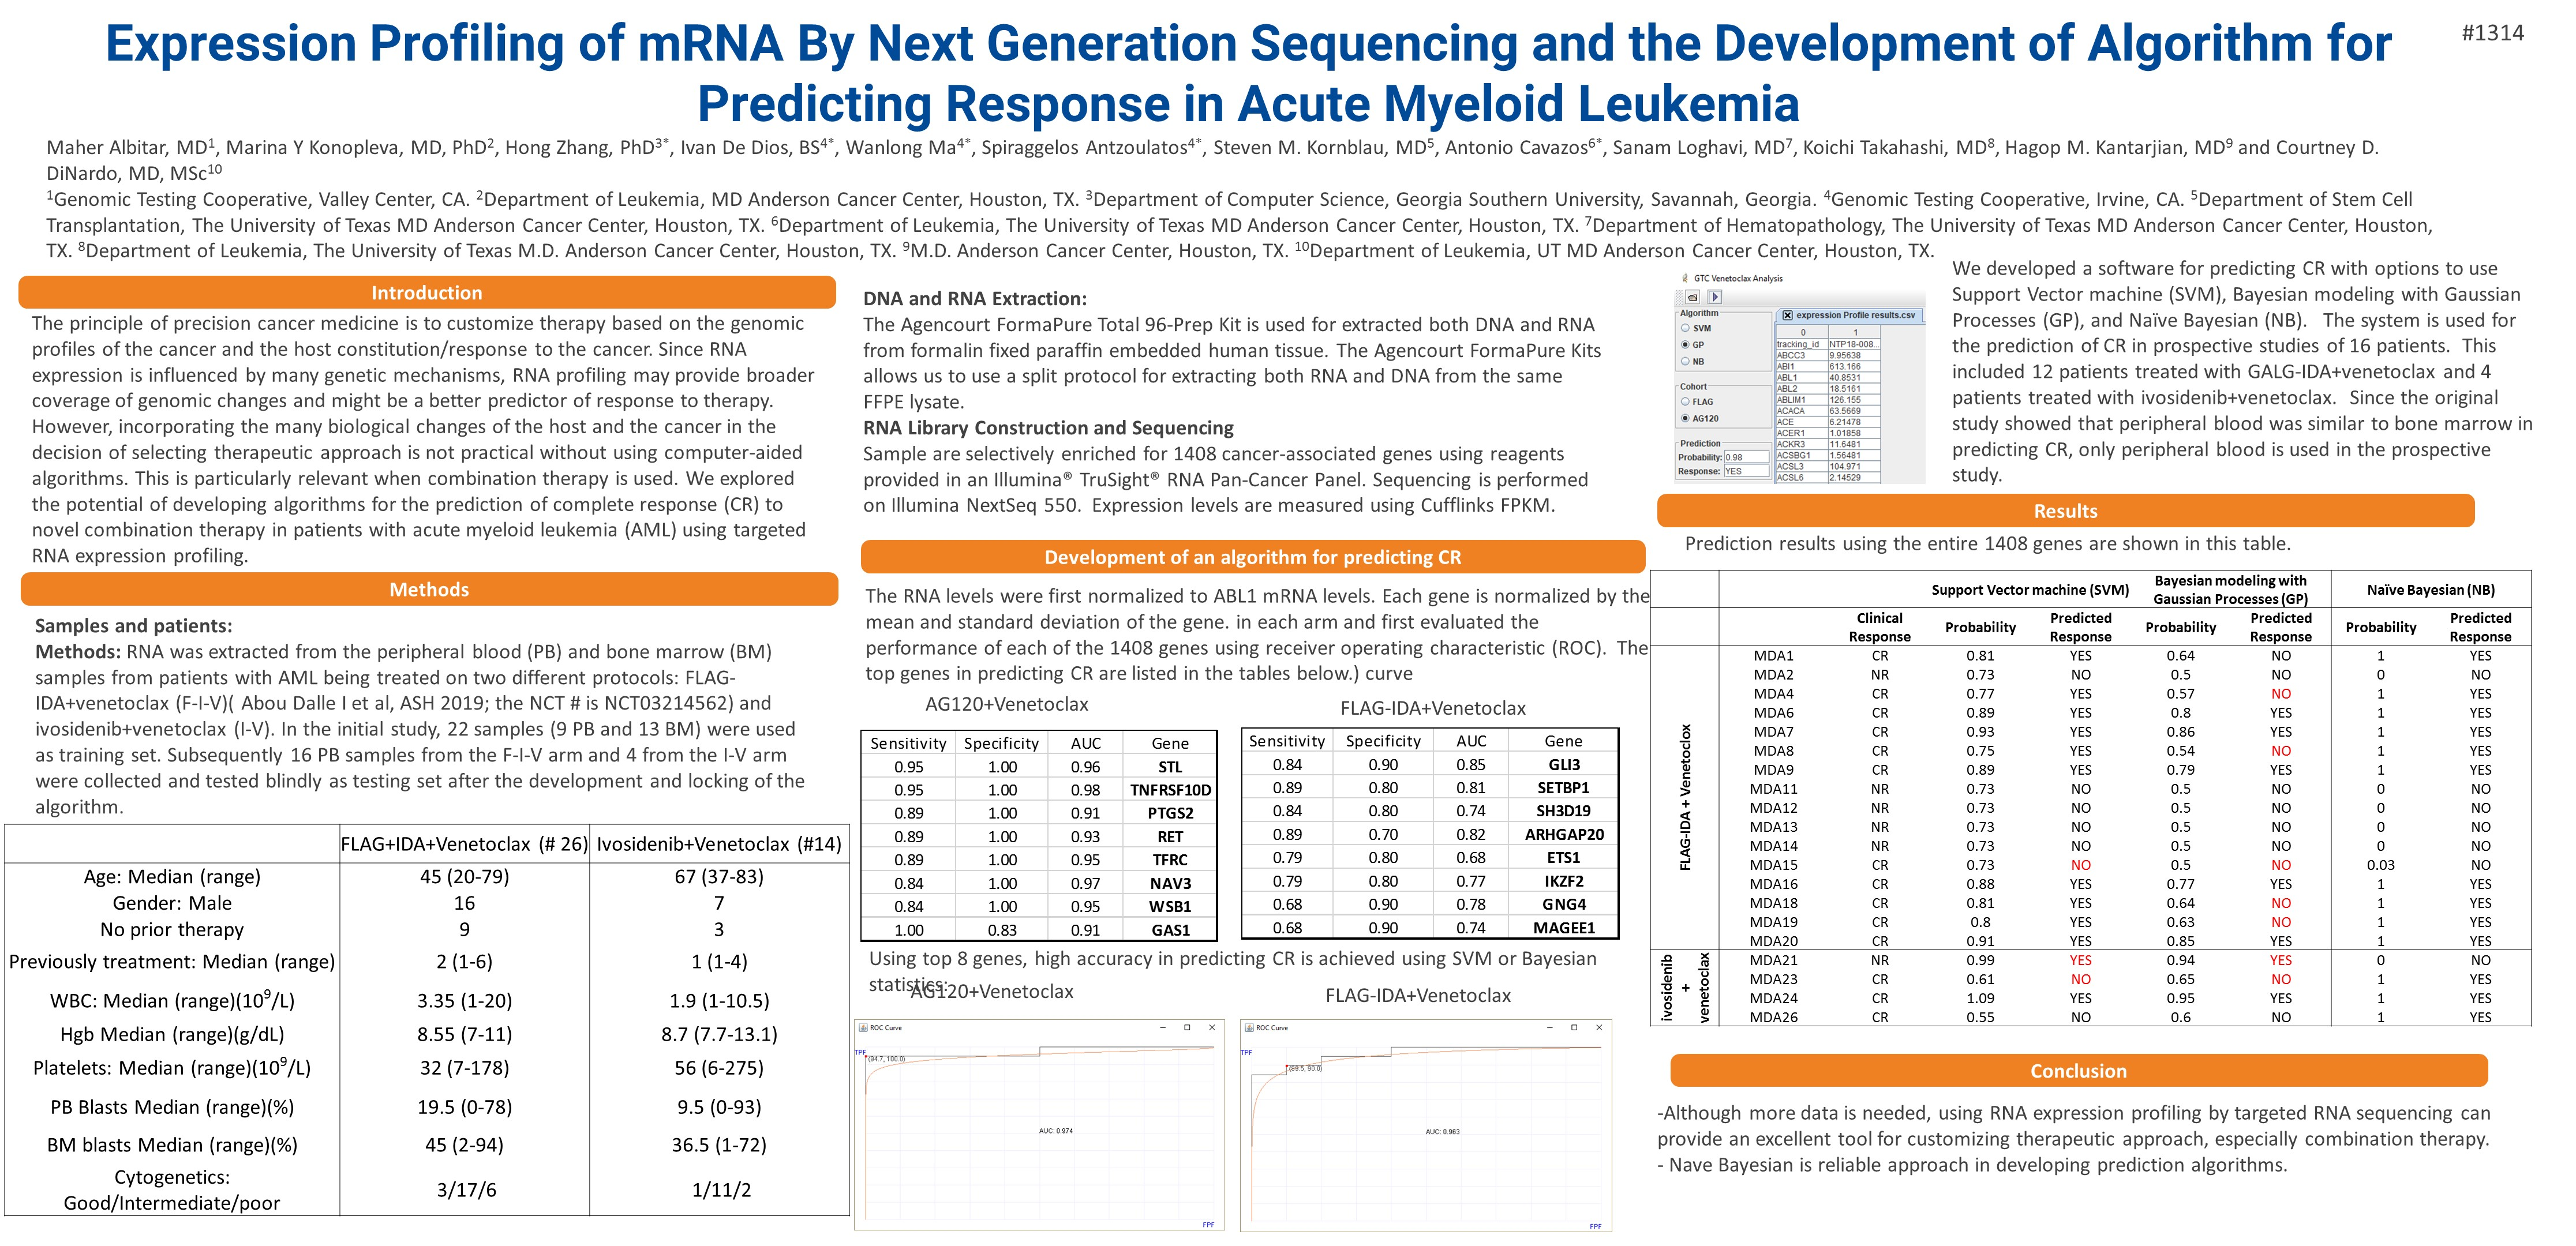 Expression Profiling of mRNA By Next Generation Sequencing and the Development of Algorithm for Predicting Response in Acute Myeloid Leukemia